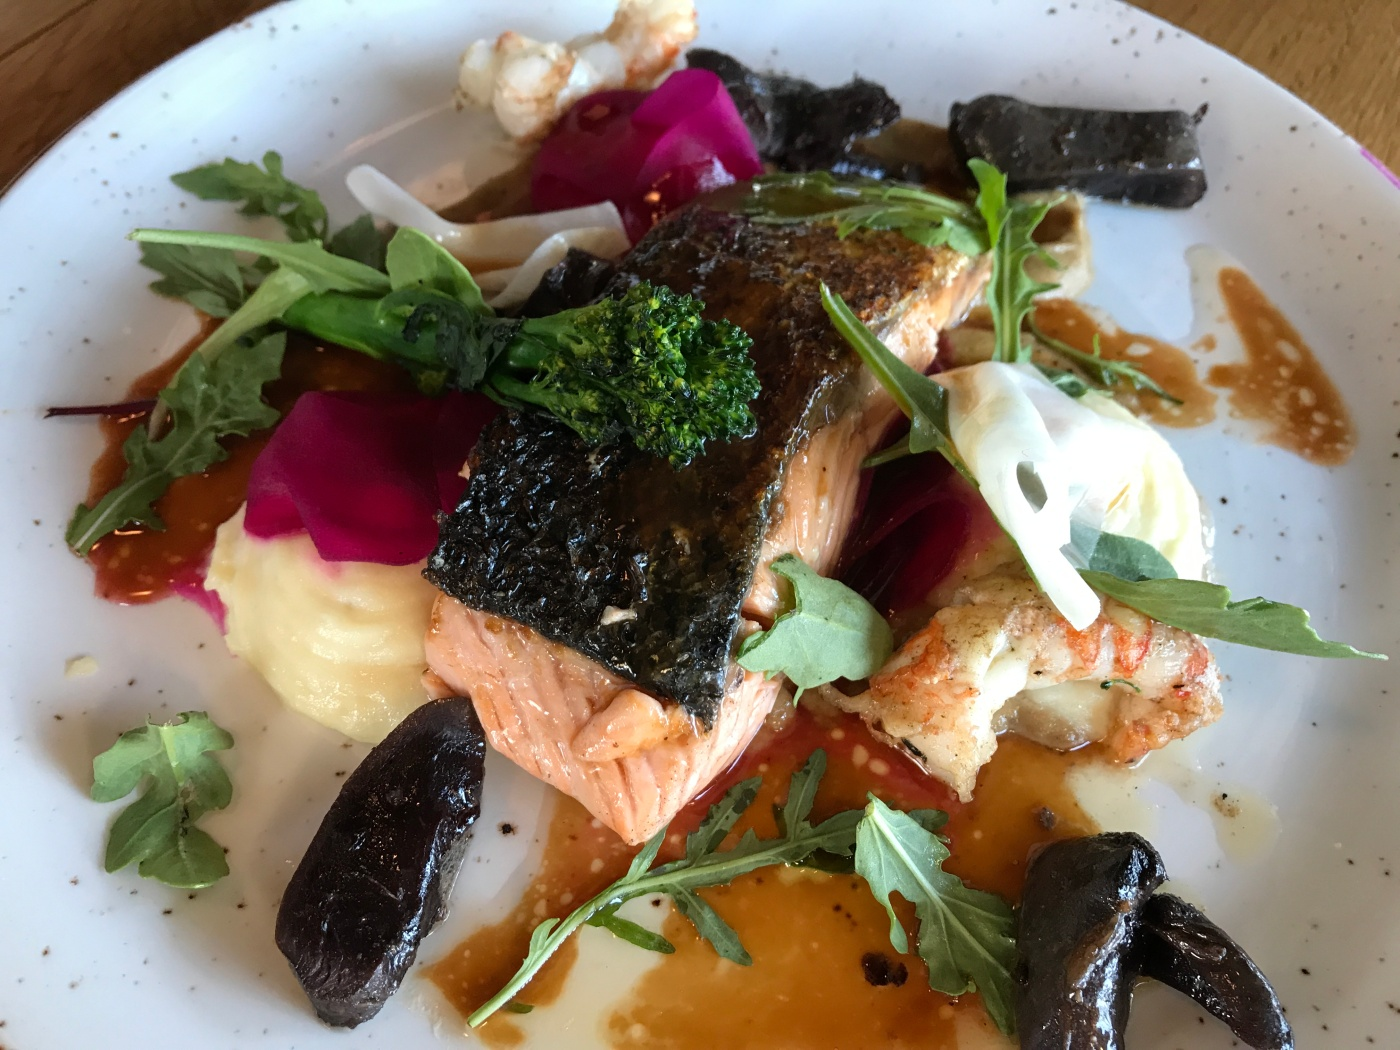 Salmon Served with Baked Asparagus, Icelandic Potatoes, Herb Salad and Yuzu Dressing at Strikið Restaurant in Akureyri, Iceland